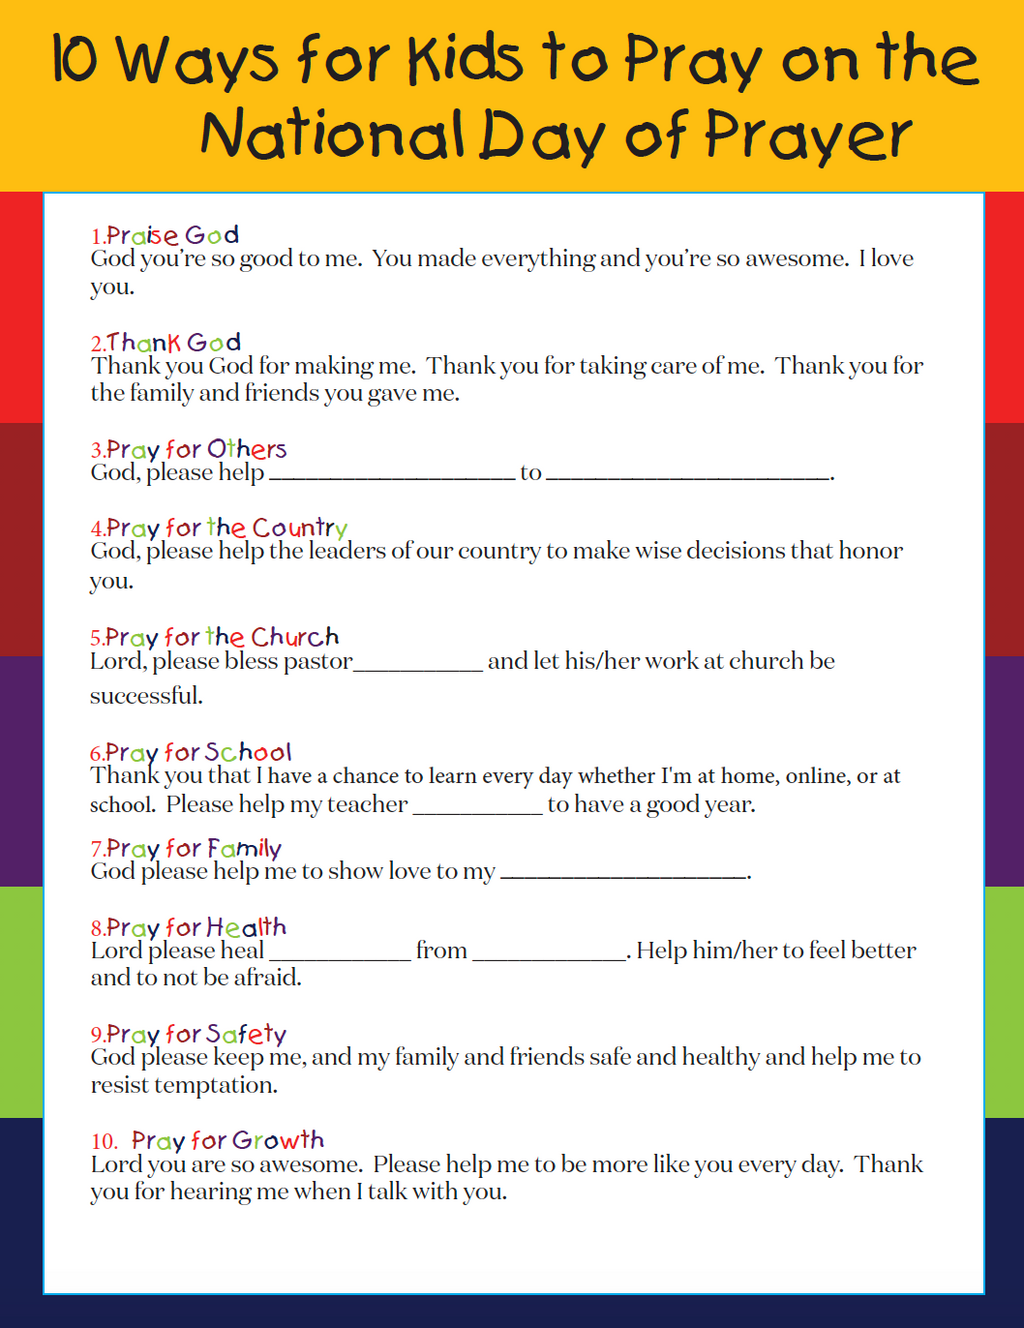 Free Printable National Day Of Prayer Guide For Kids